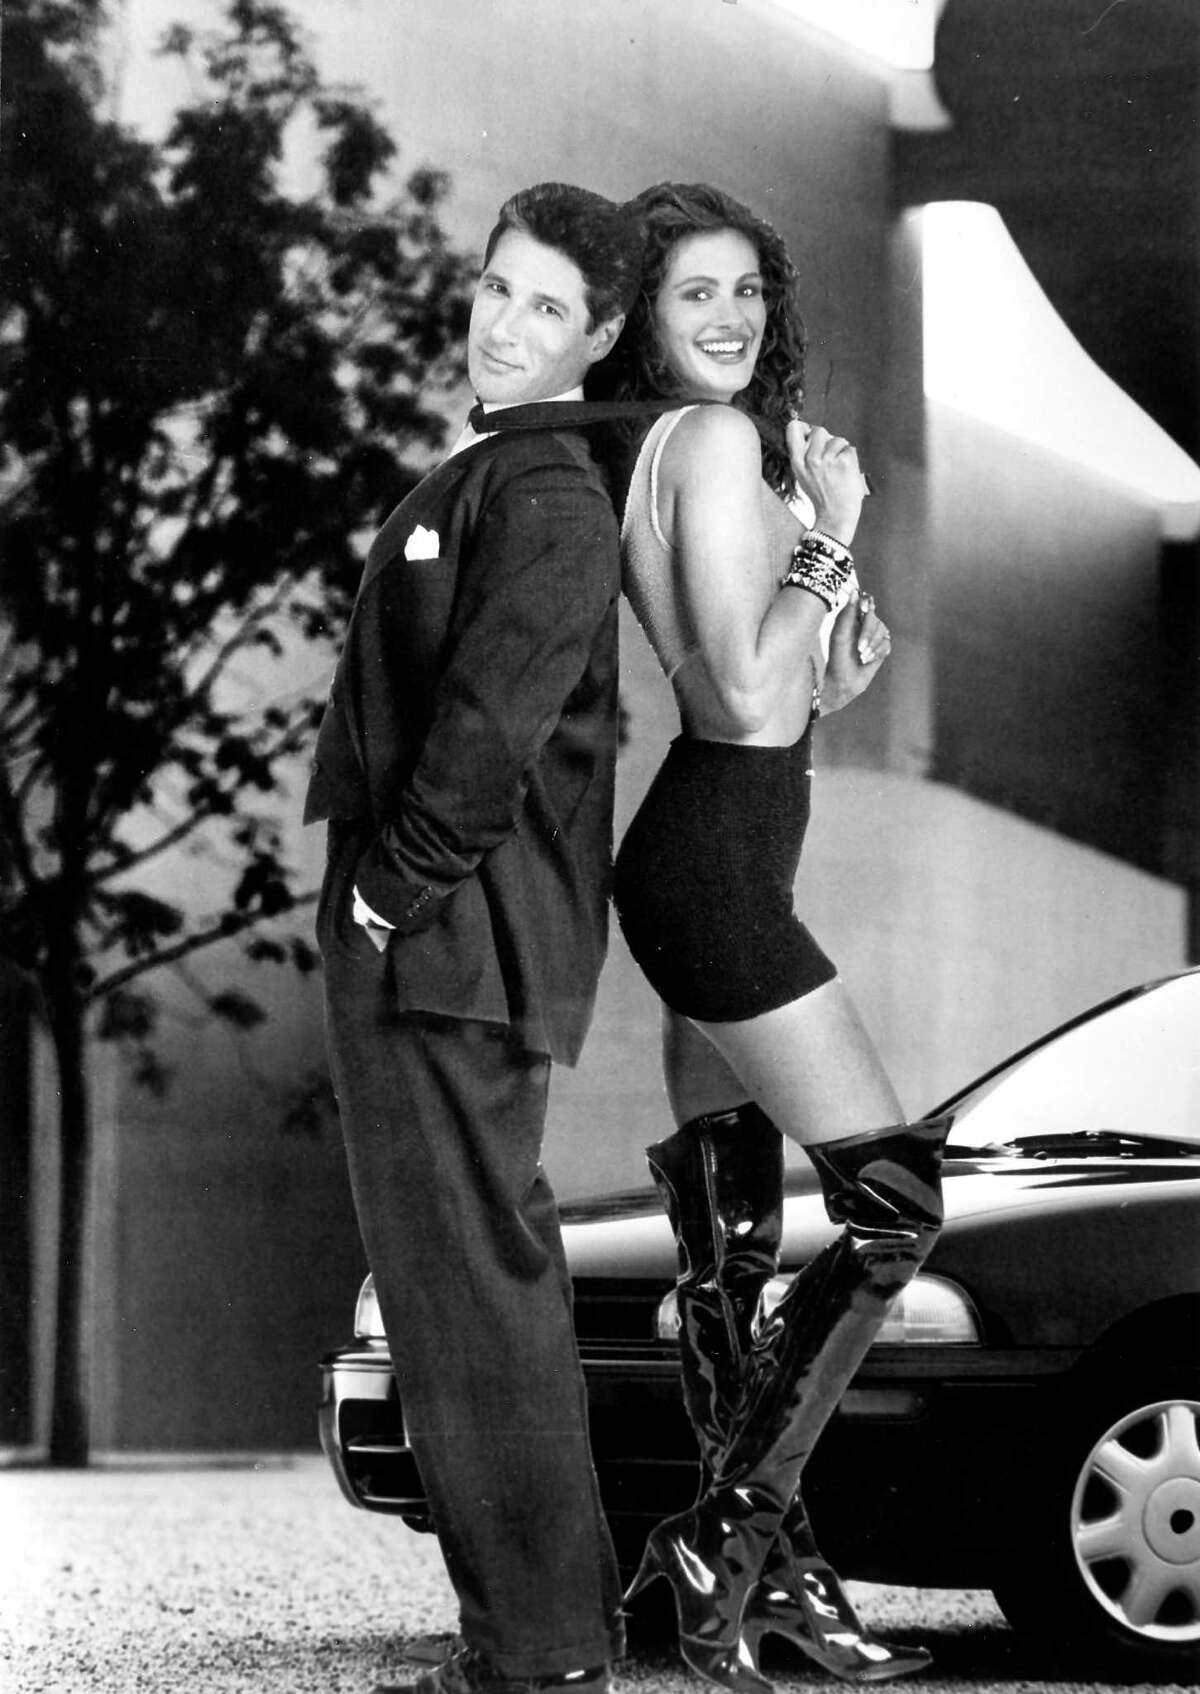 The movie was originally intended to be a darker, more cautionary tale in which Vivian is addicted to drugs and Edward eventually tosses her from his car and drives away.